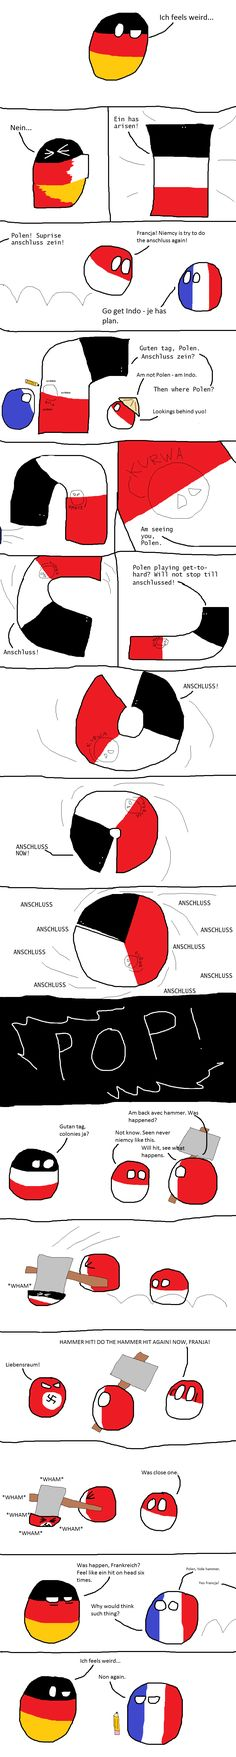 Pin by Tsersing Arron on Polandball Pinterest